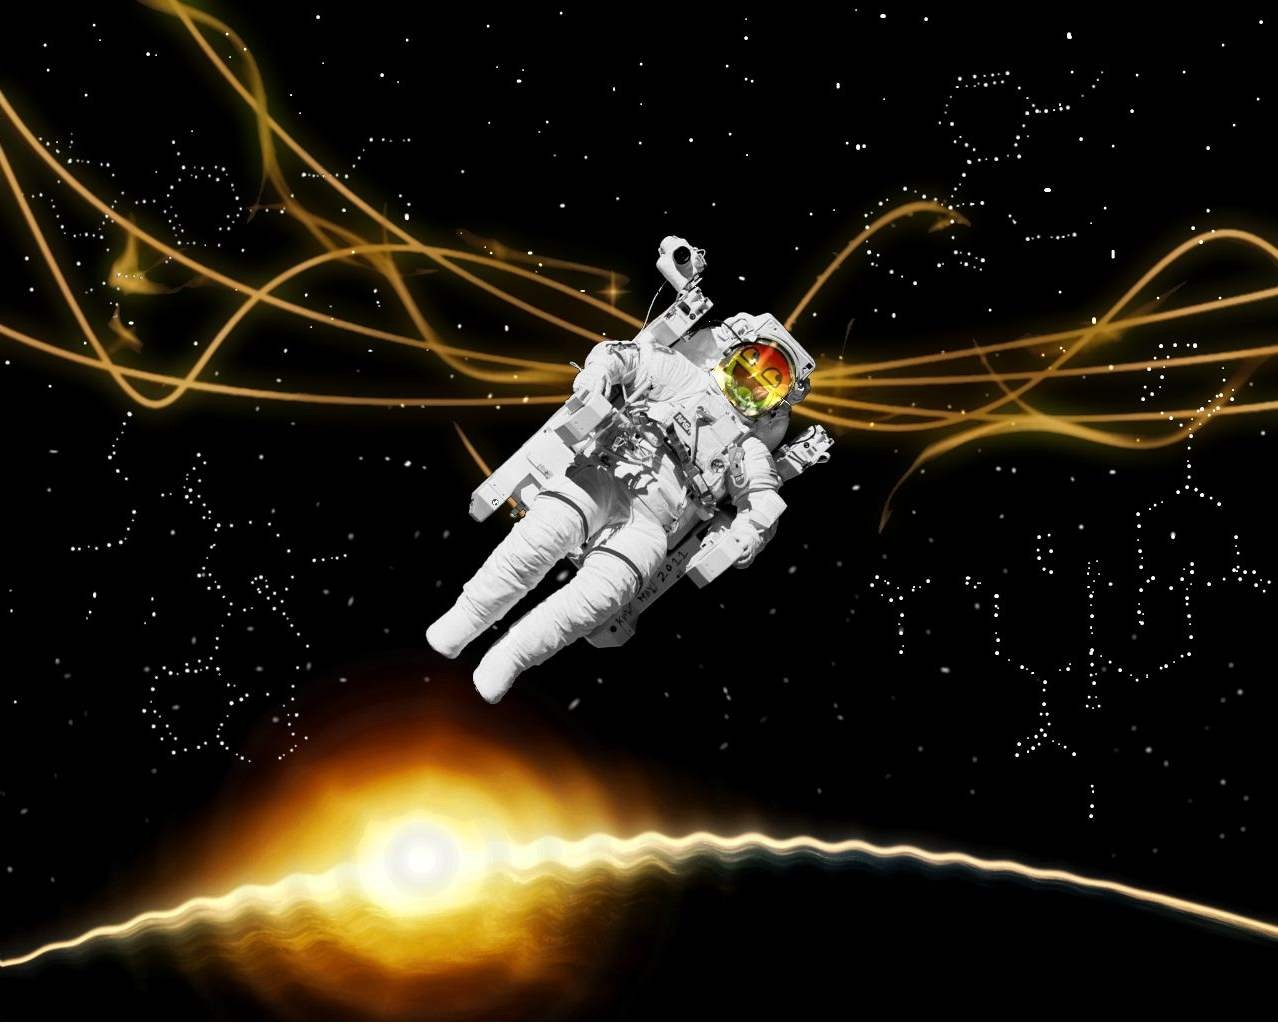 outer space drugs astronauts thc lsd HD Wallpaper 1278x1024